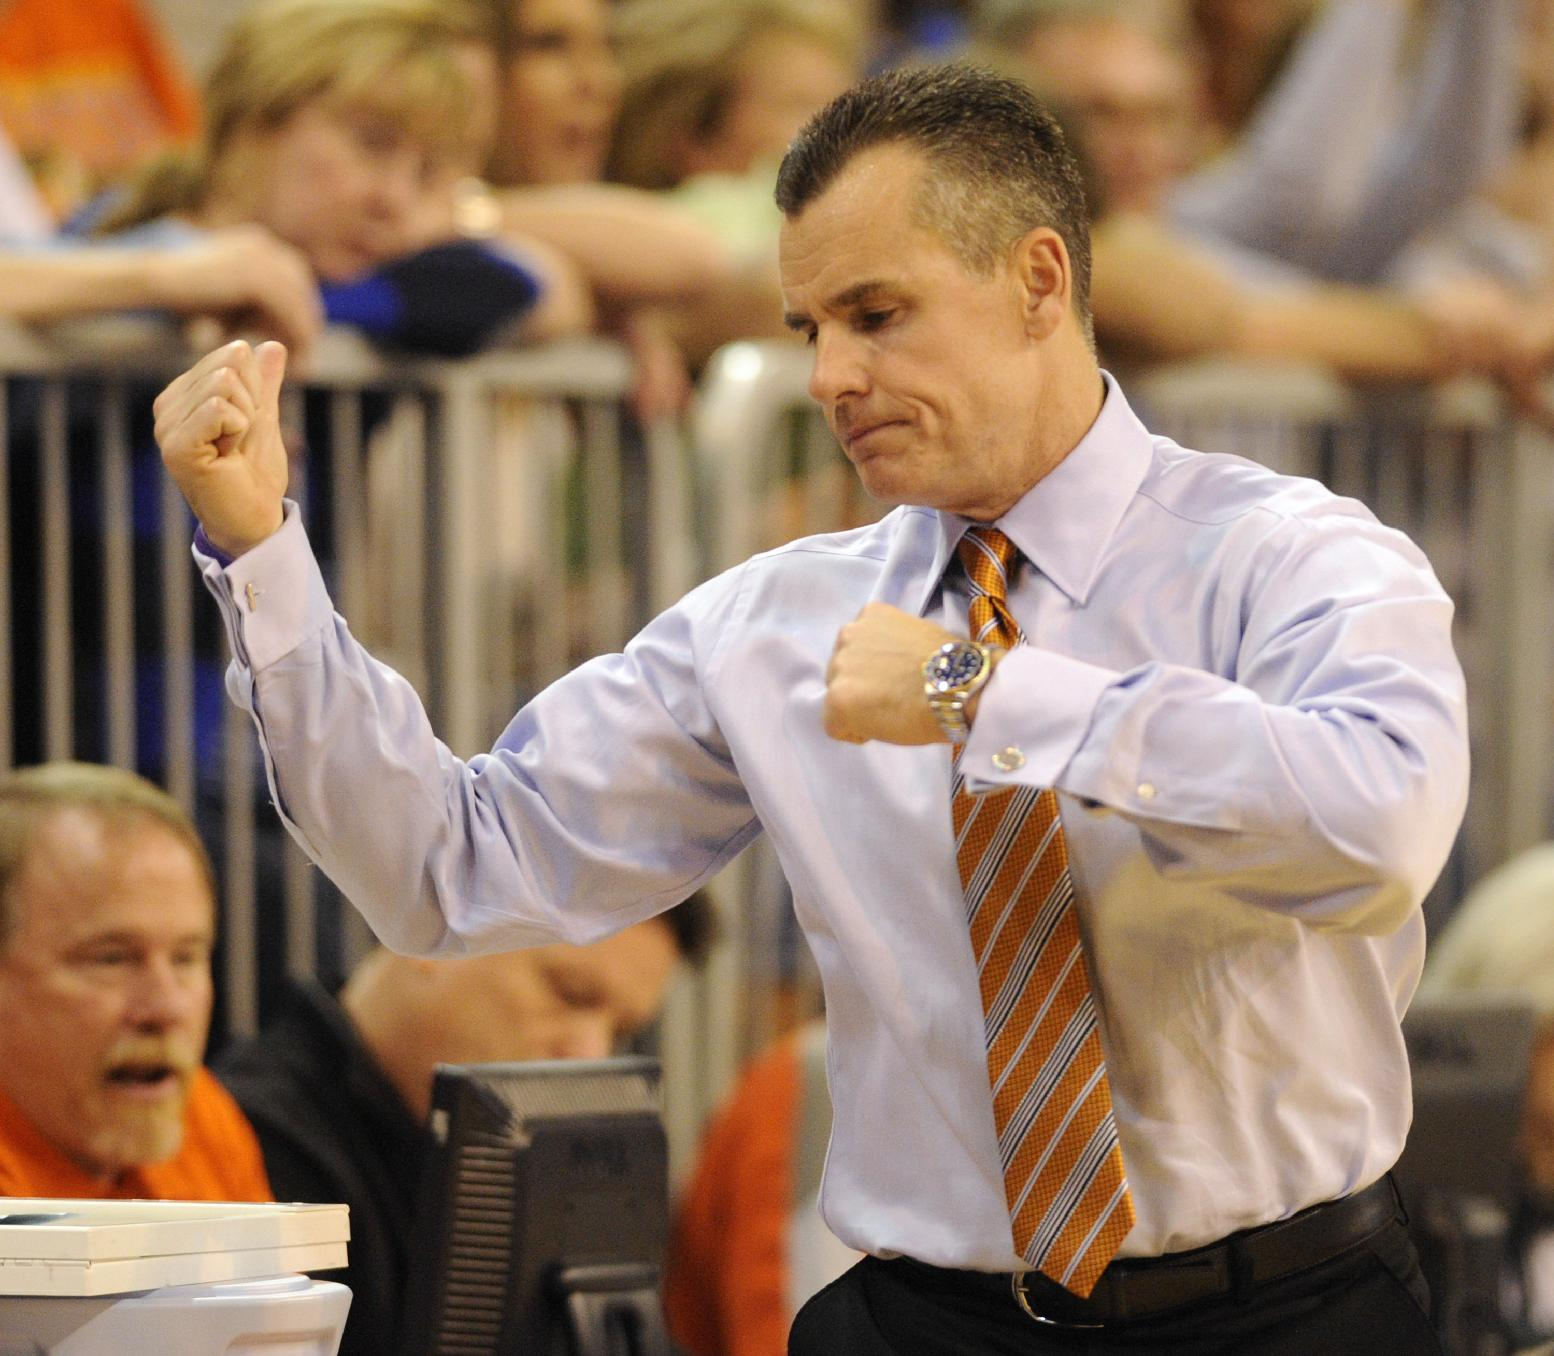 Florida coach Billy Donovan reacts to play on the court during the second half of an NCAA college basketball game against The University of Kansas Tuesday, Dec. 10, 2013 in Gainesville, Fla. Florida won the game 67-61